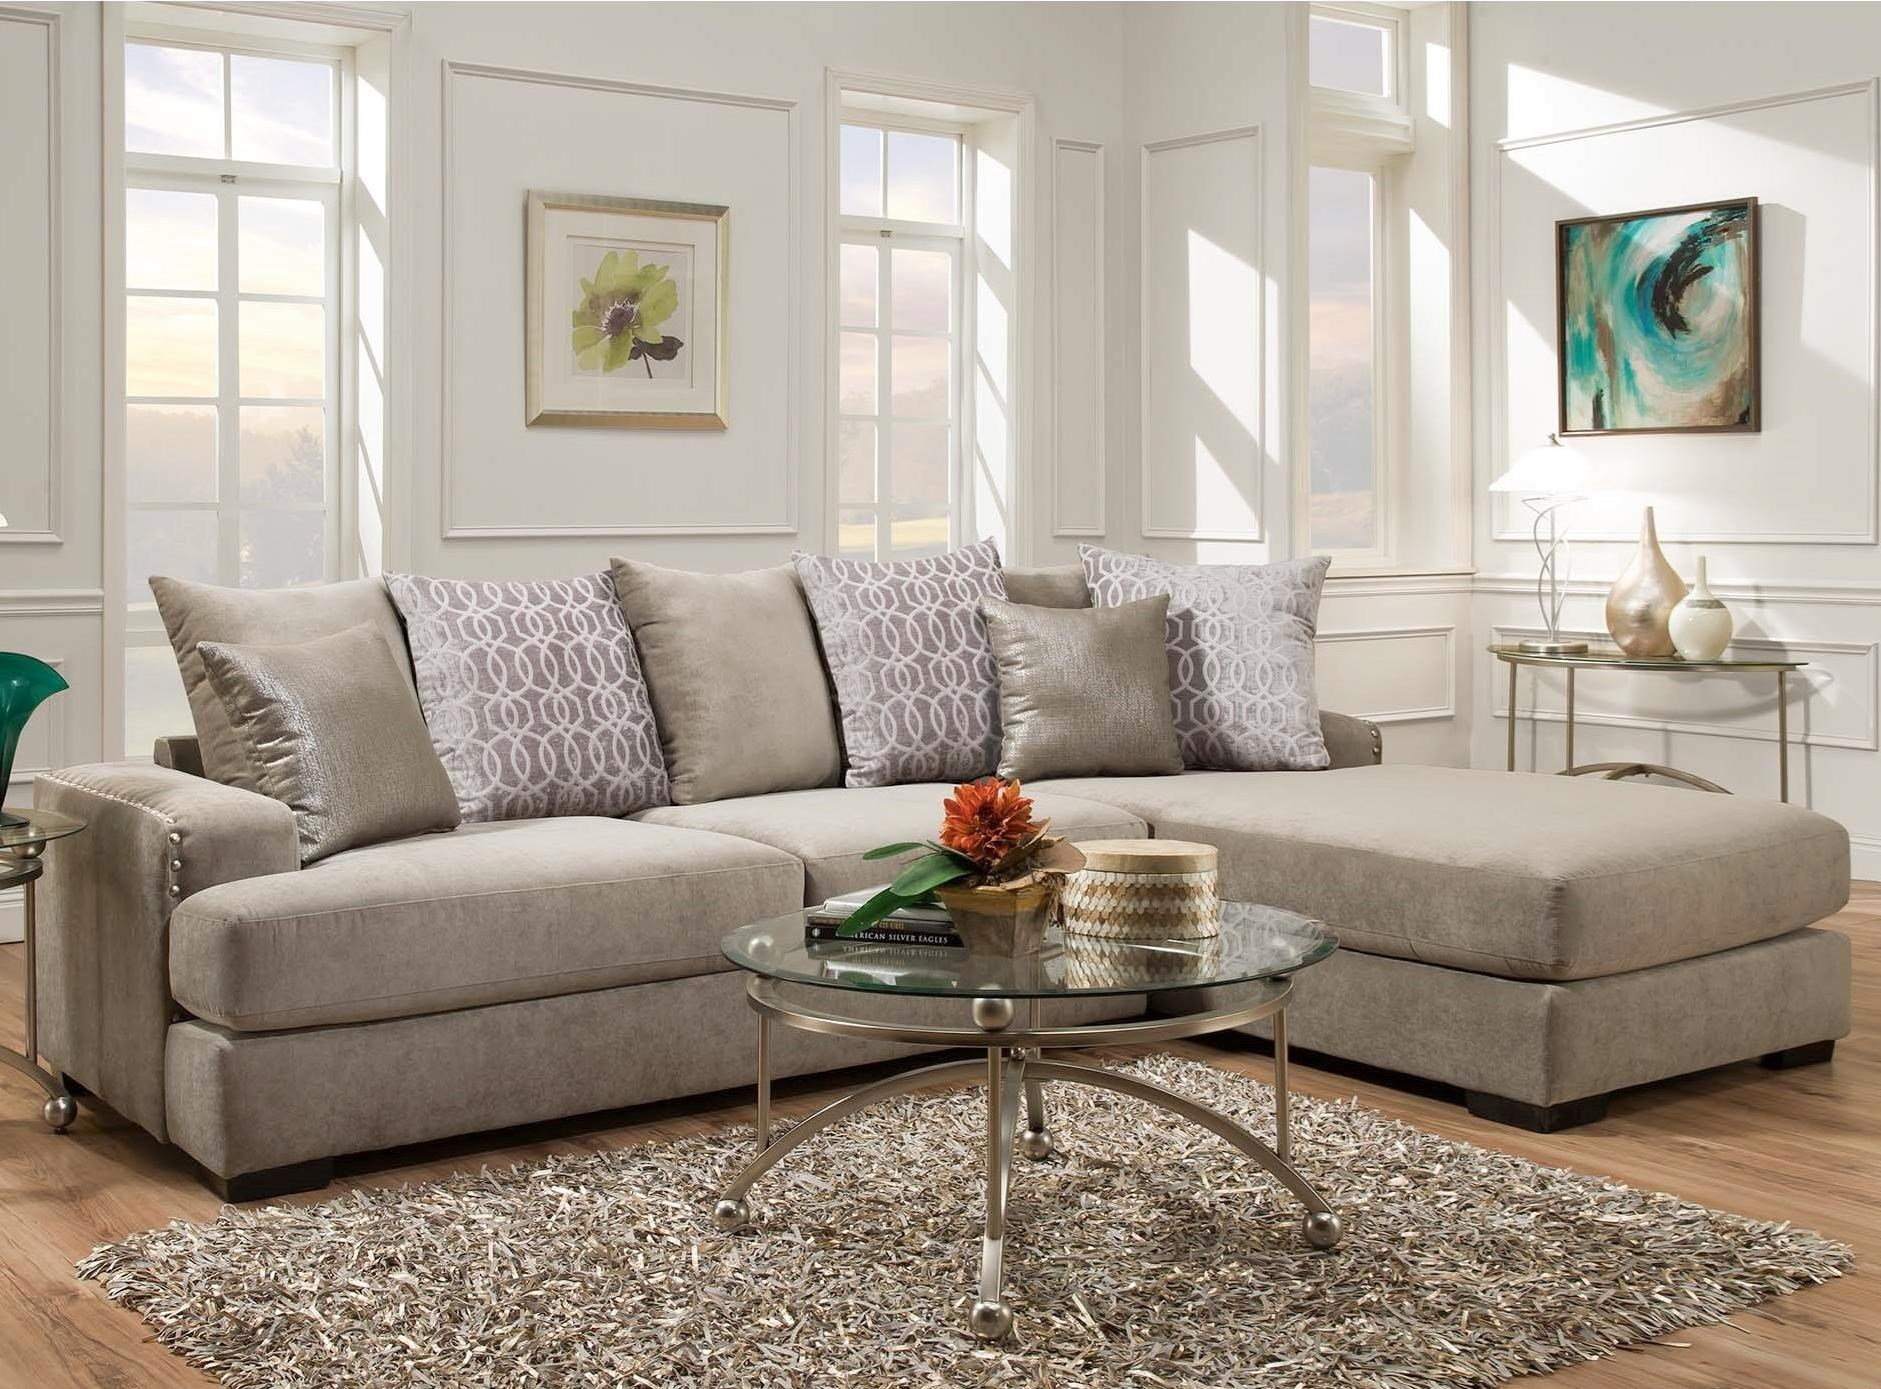 Albany sectional sofa albany 348 laredo contemporary 2 for Allison recliner sectional sofa by albany industries